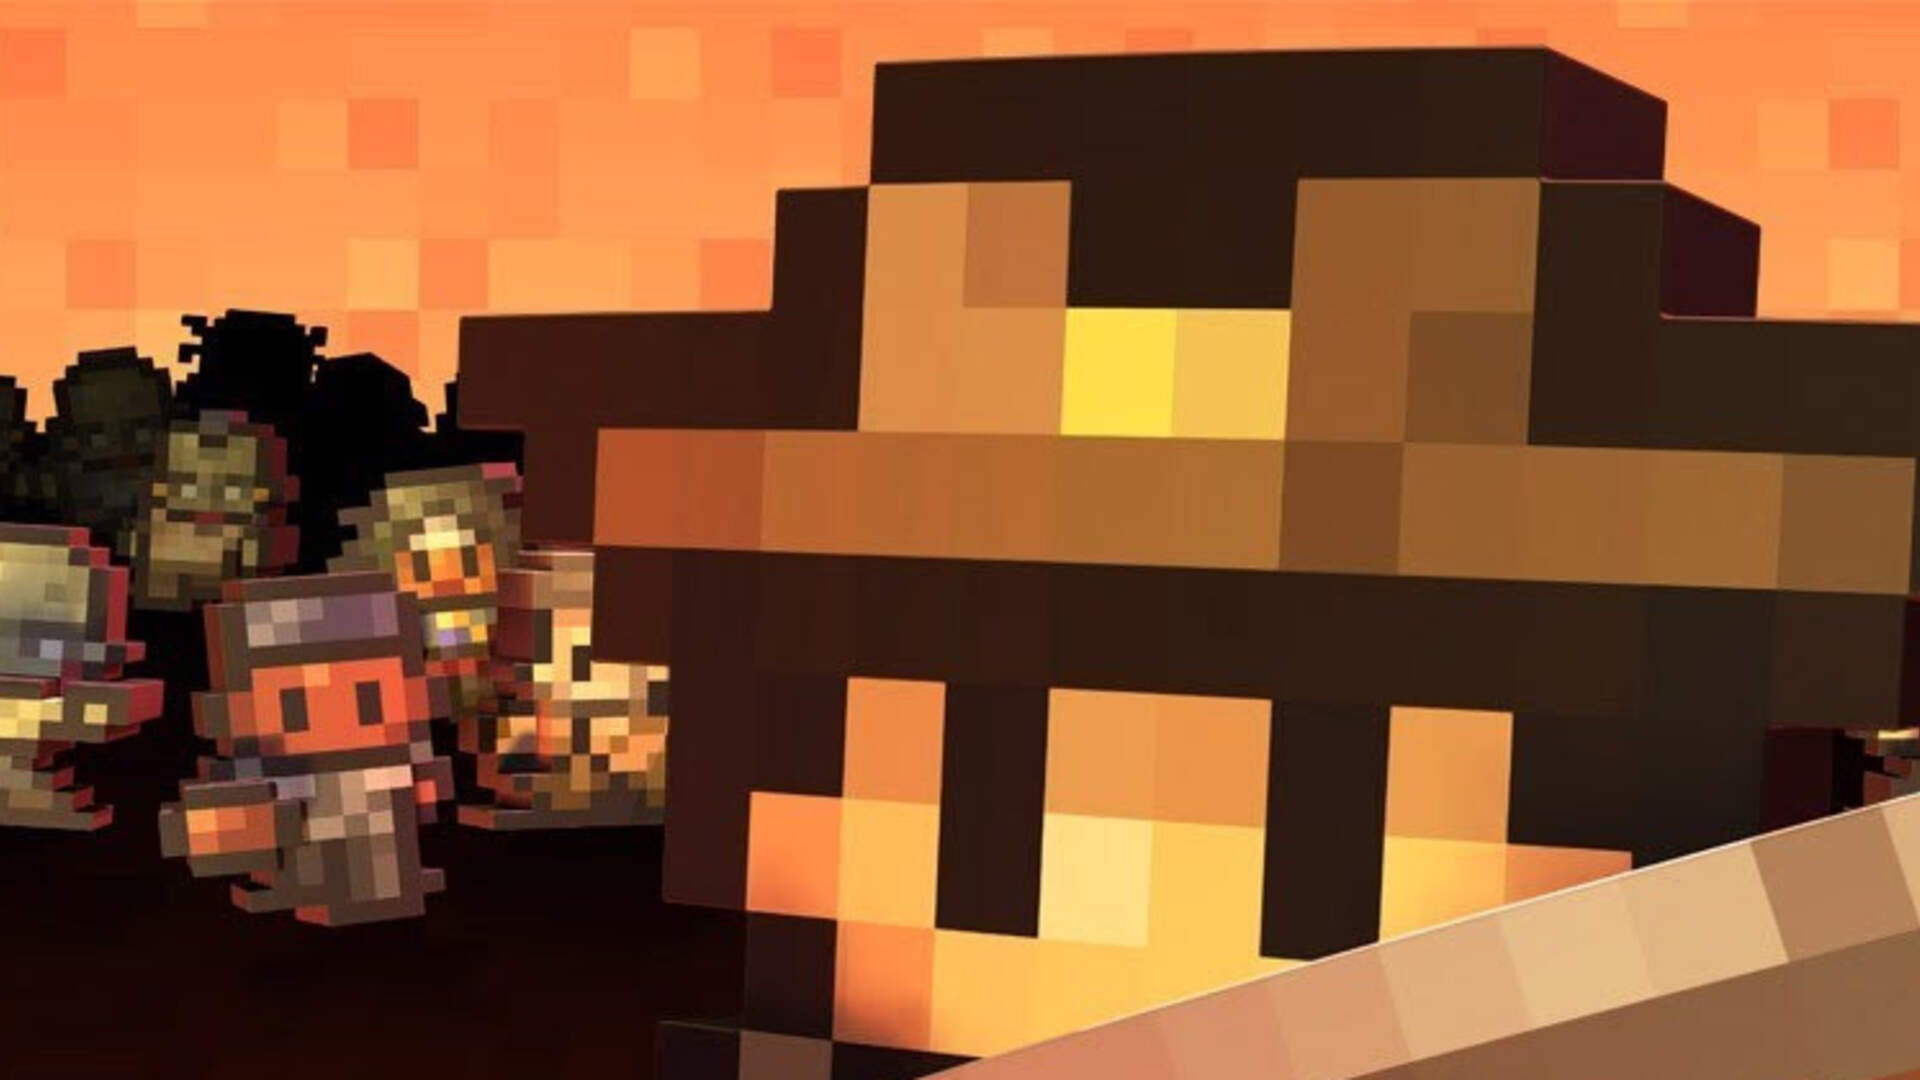 The Escapists: The Walking Dead Proves the Zombie Apocalypse is Mostly About Time Management